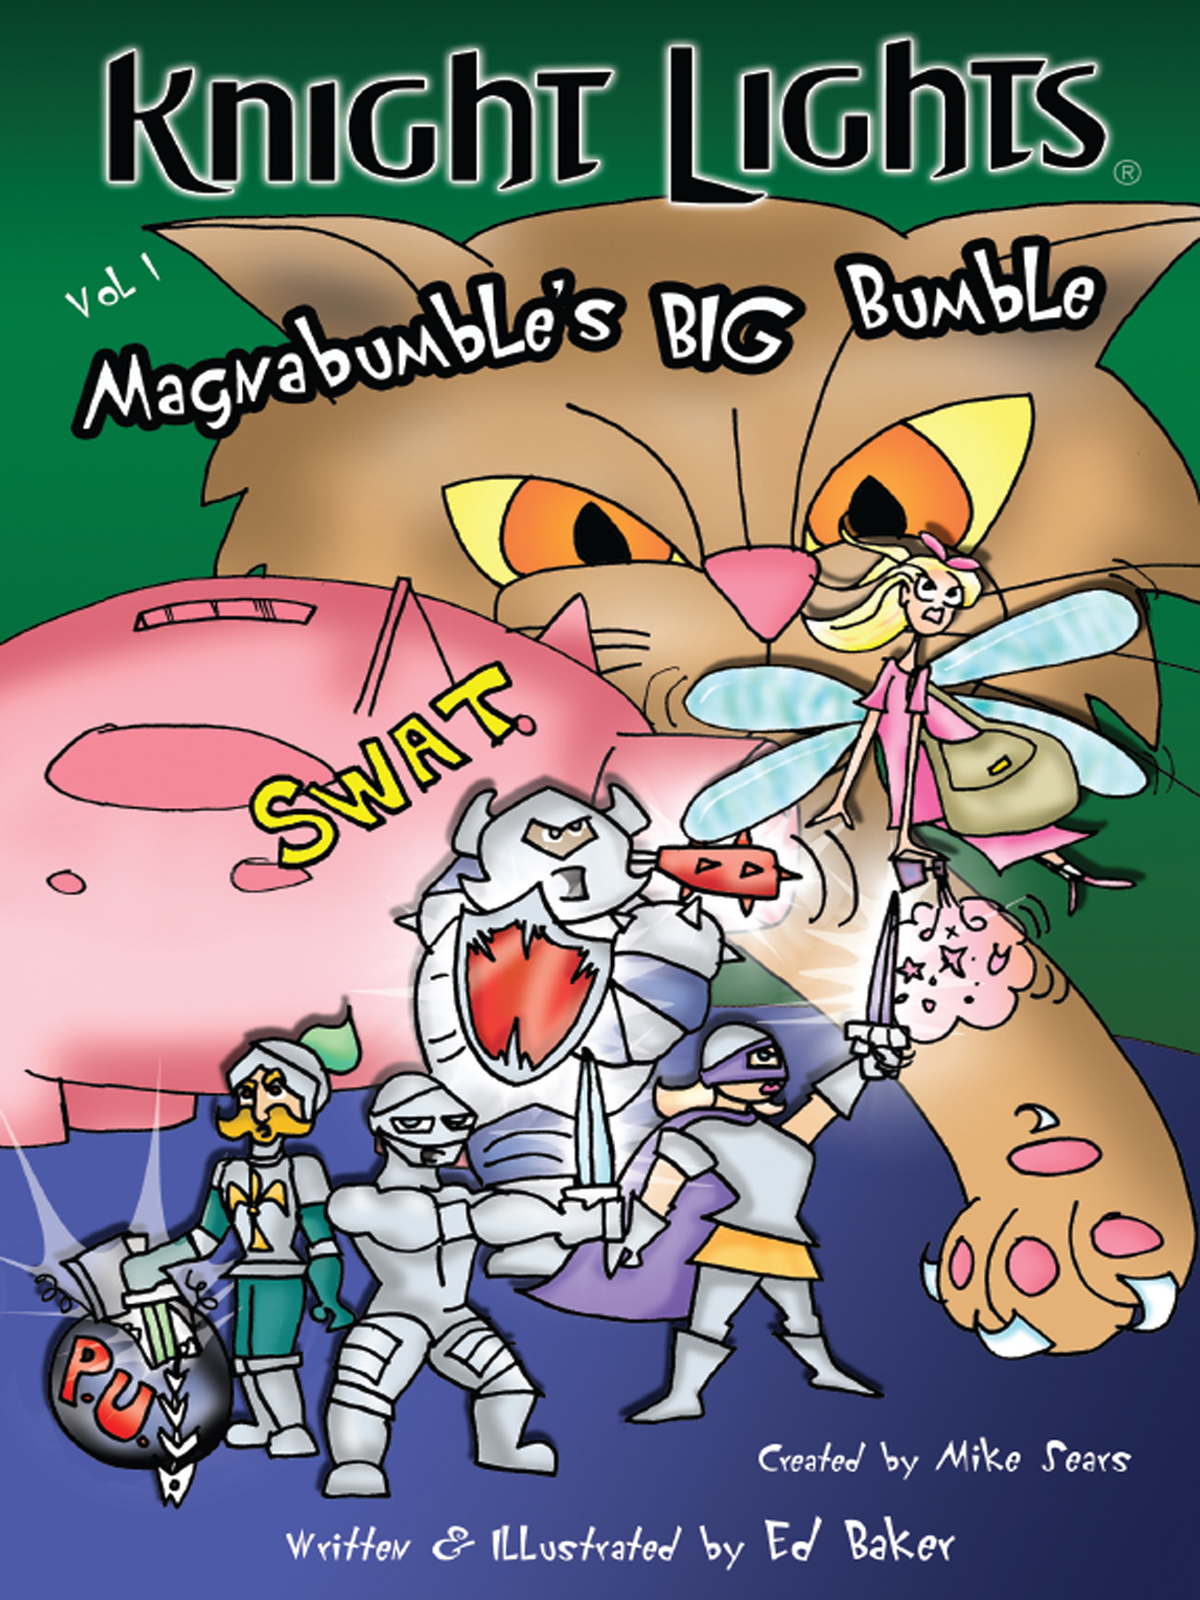 Cover of Knight Lights Vol 1: Magnabumble's Big Bumble